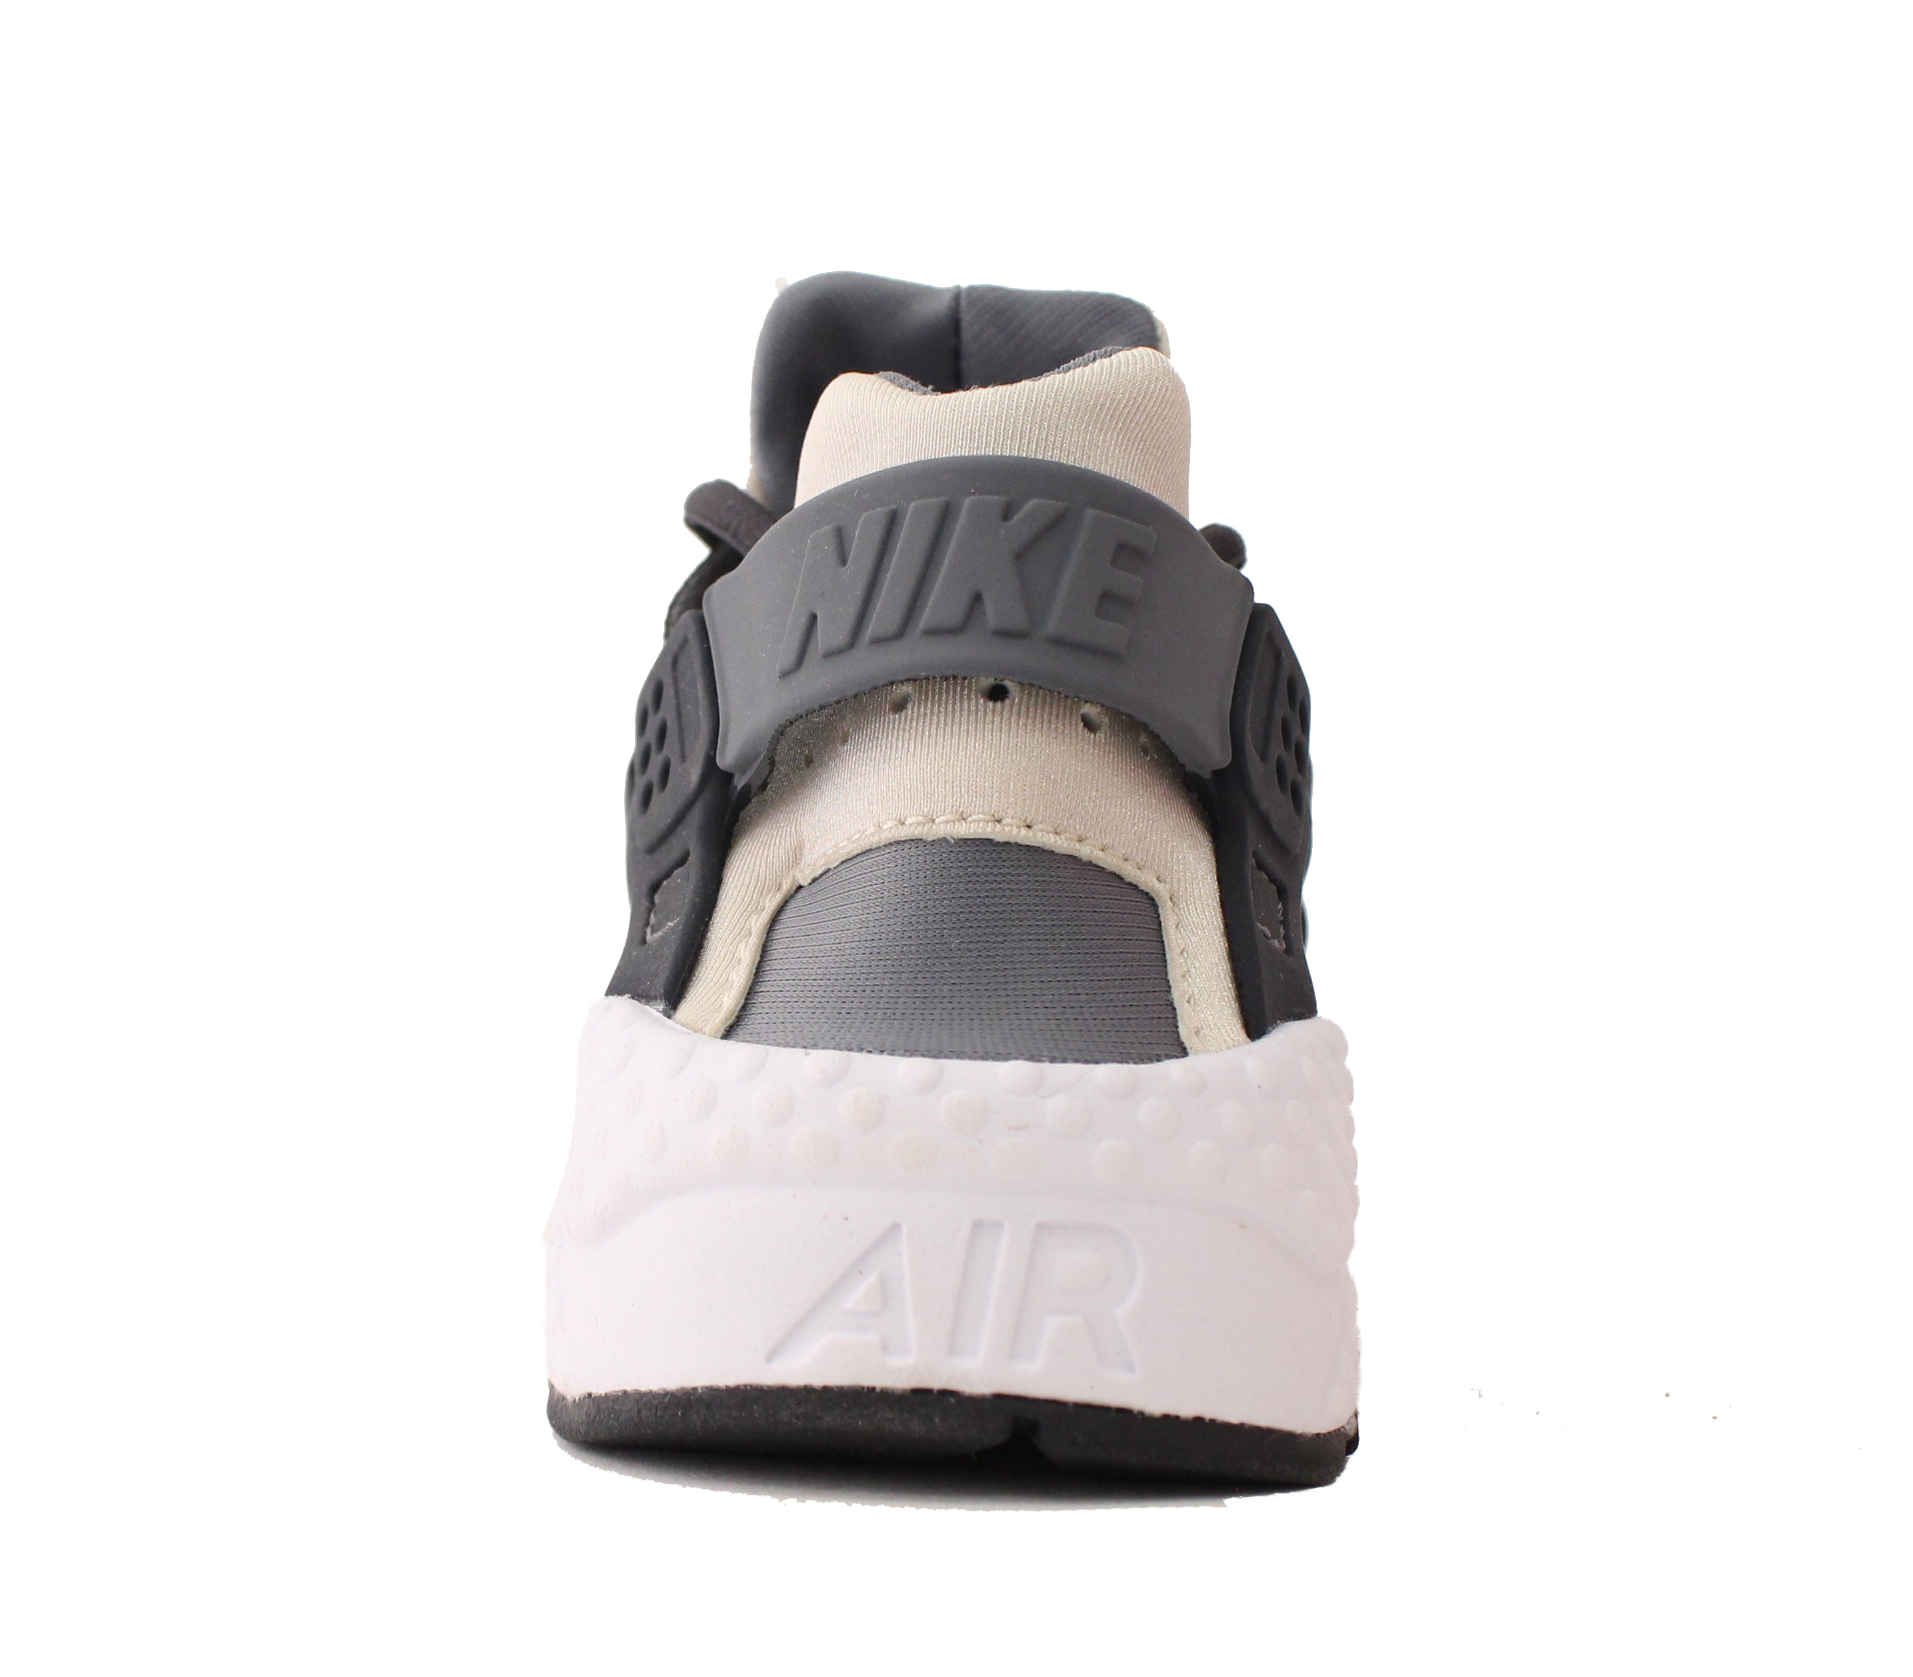 NIKE WOMENS AIR HUARACHE RUN SZ 6 ANTHRACITE 019 OATMEAL COOL GREY 634835 019 ANTHRACITE 32105b